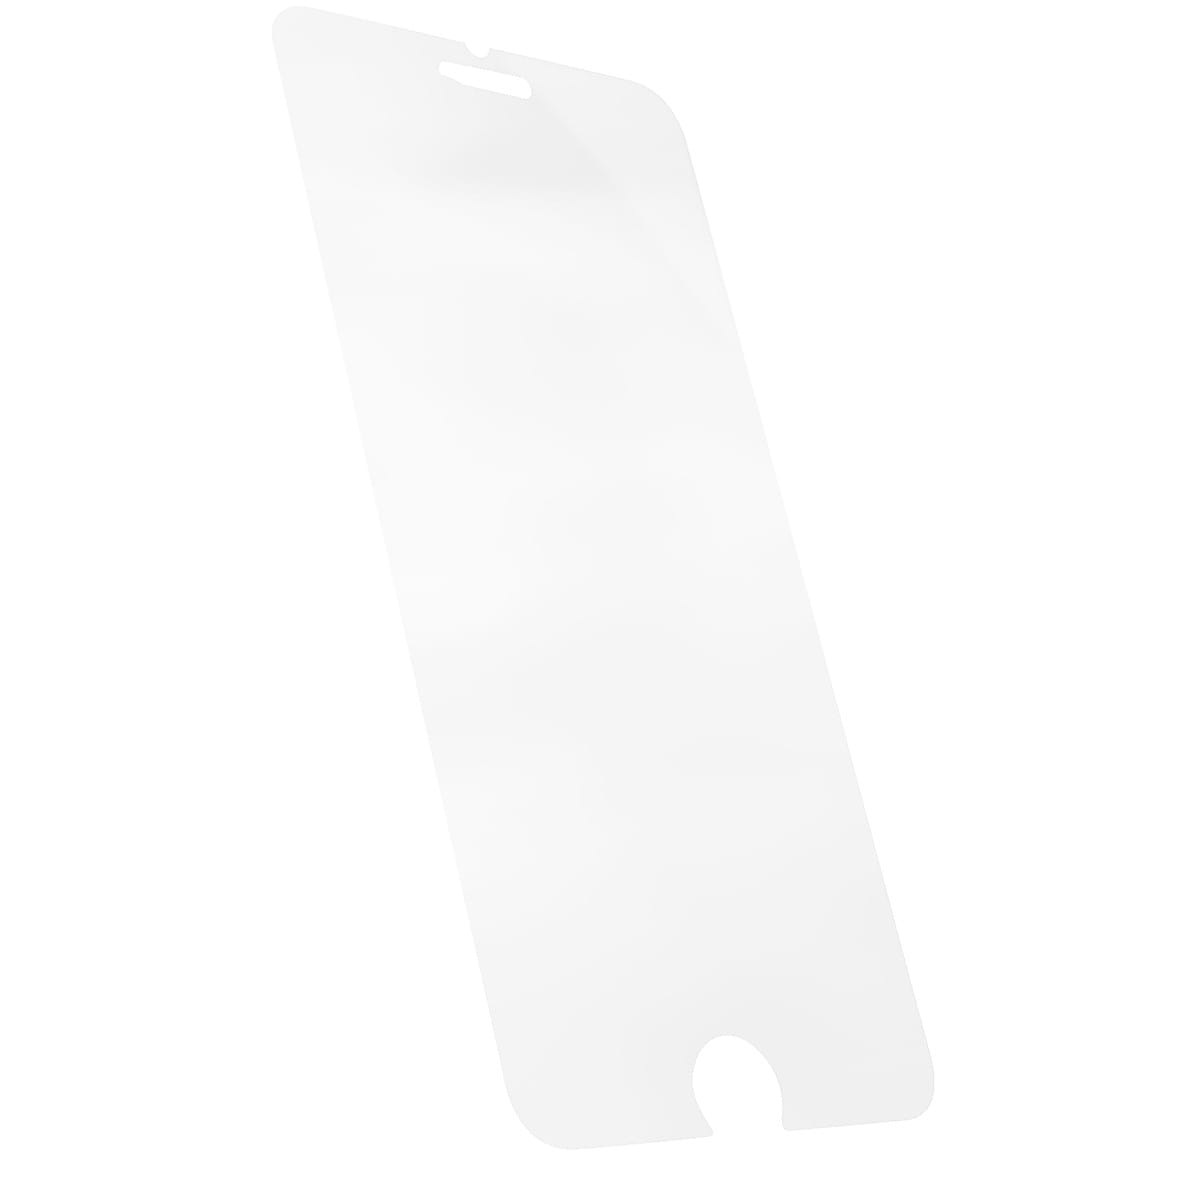 Holdit Tempered Glass, displaybeskyttelse for iPhone 8 Plus